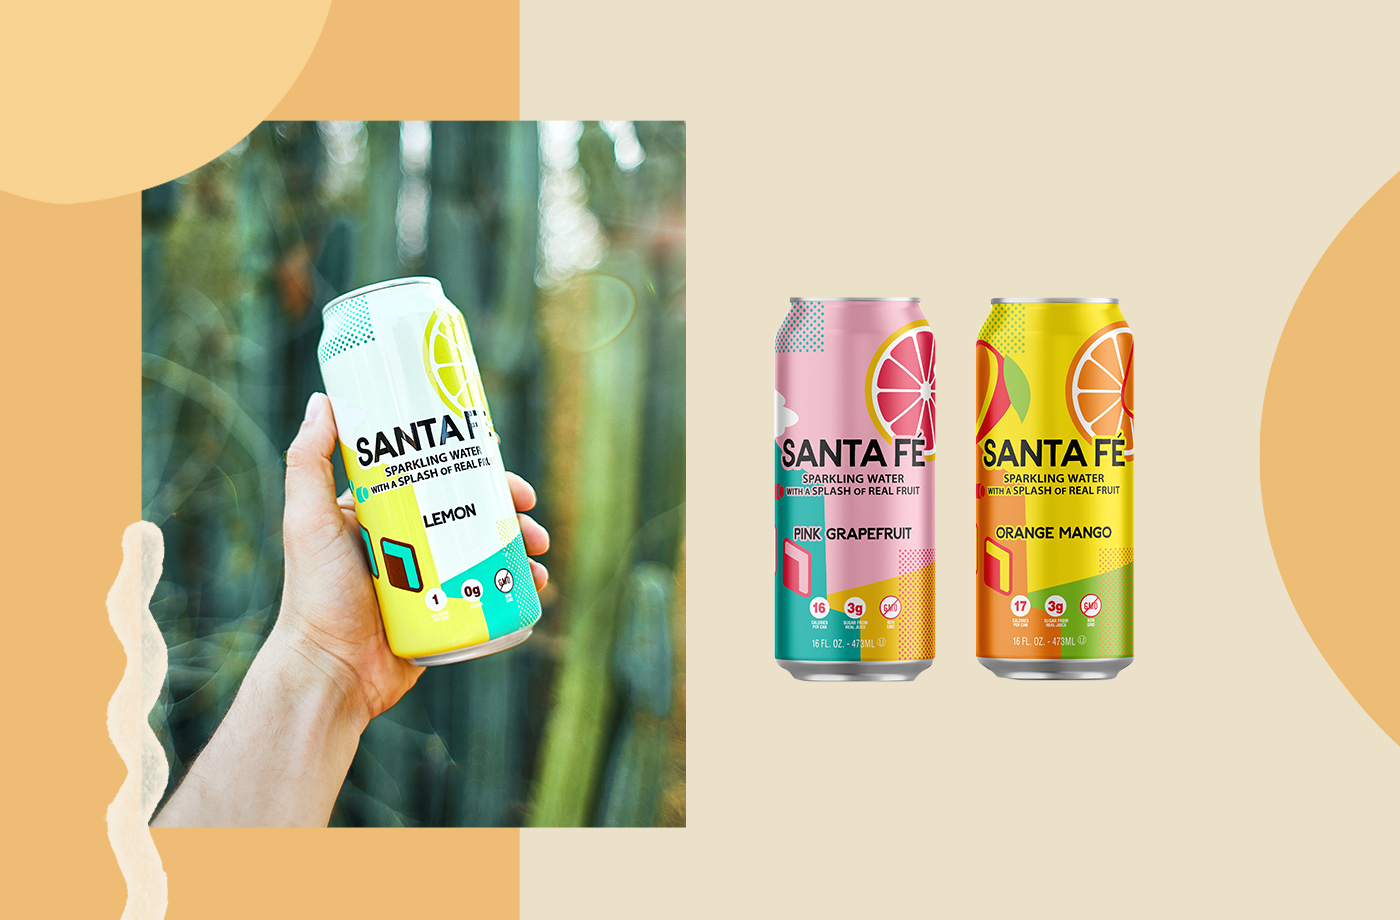 Thumbnail for Arizona Iced Tea Is Getting Into the Sparkling Water Game